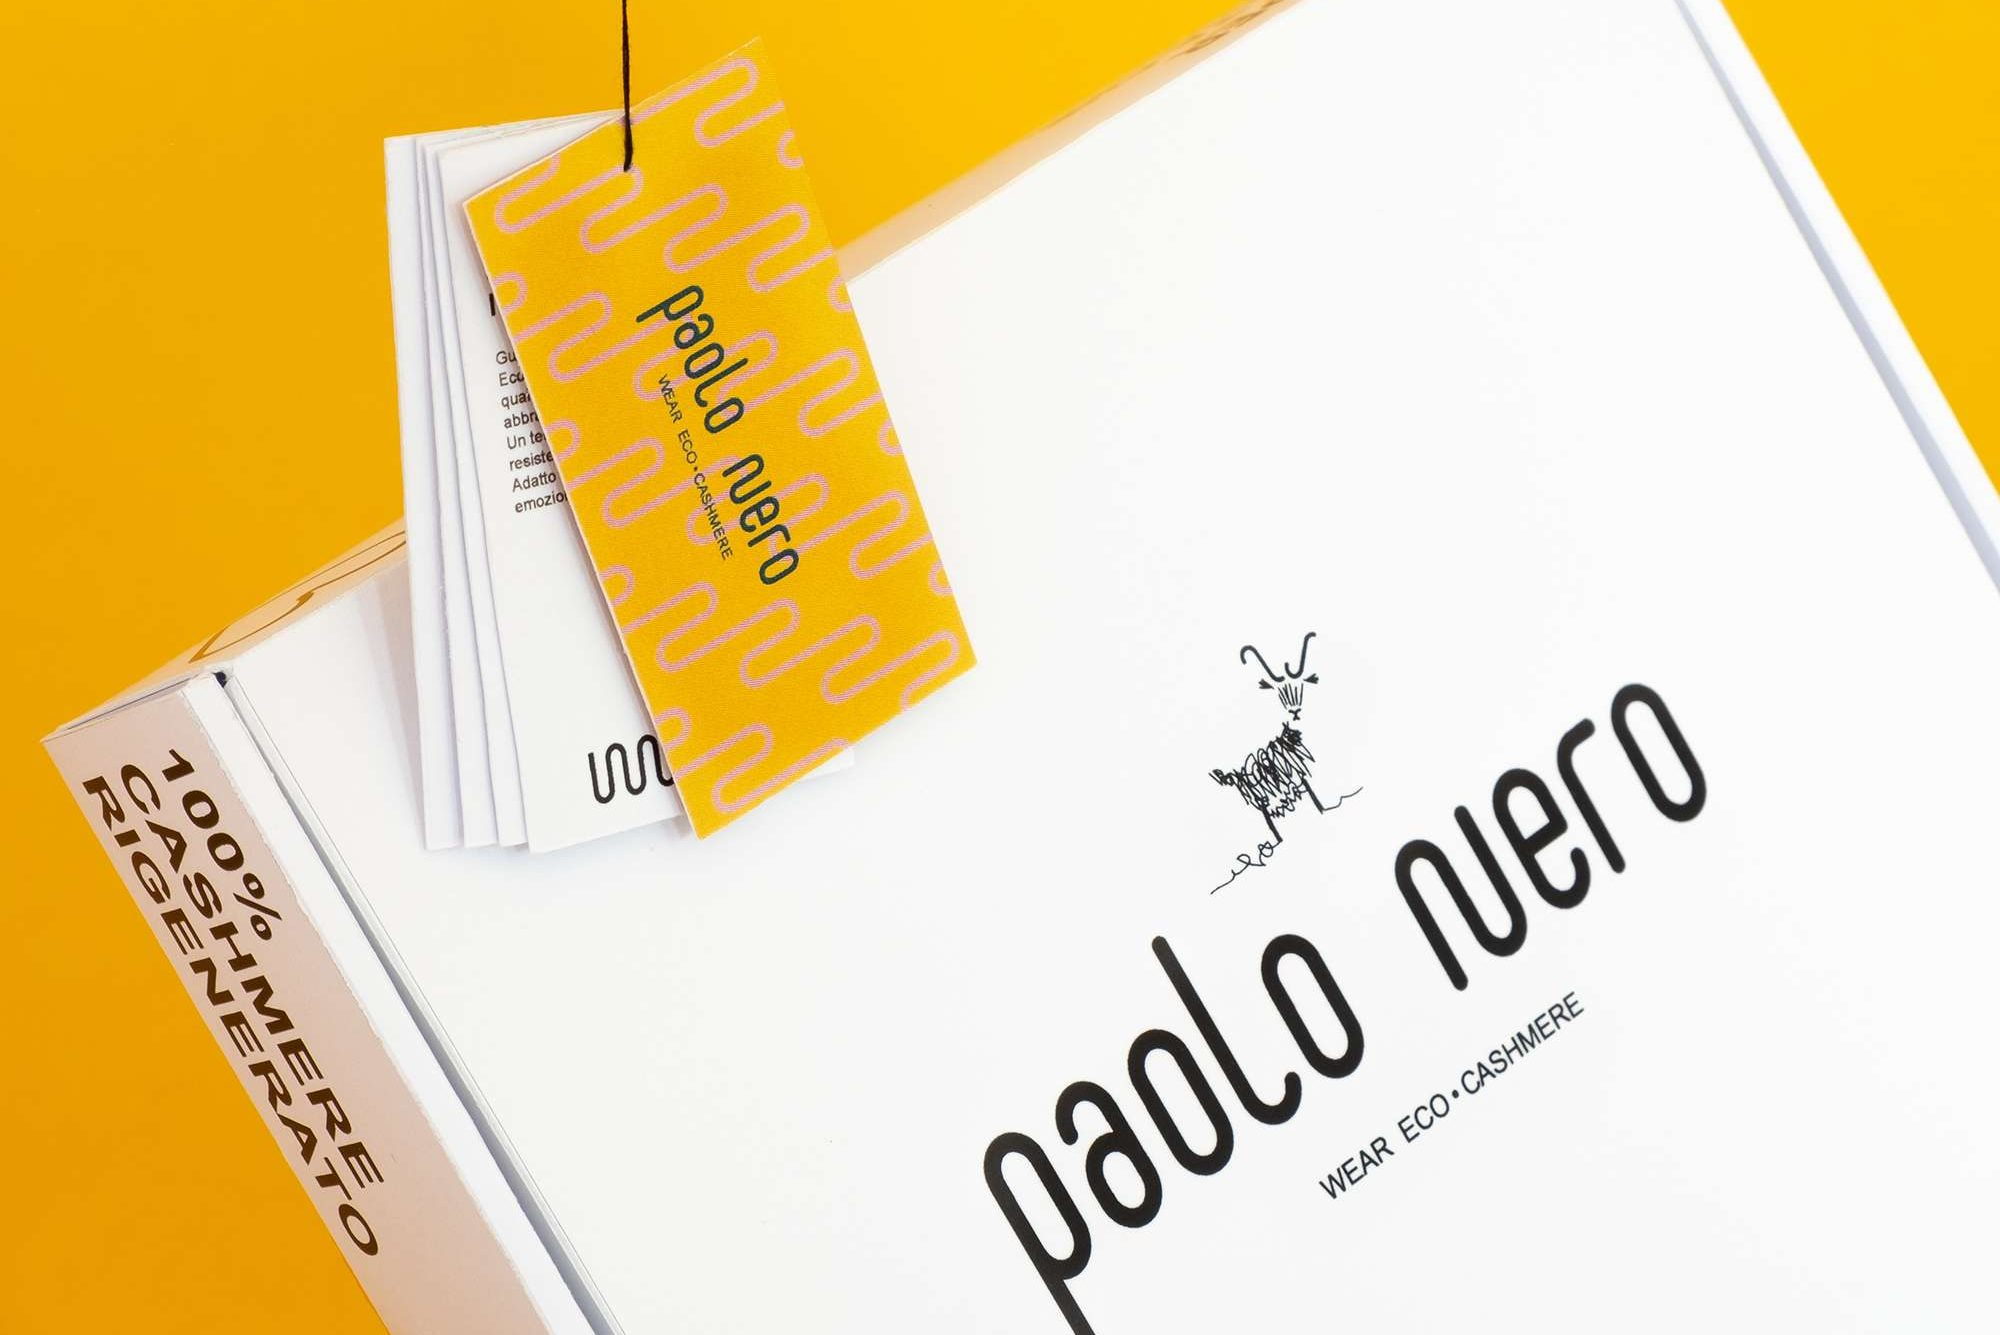 Paolo Nero Packaging